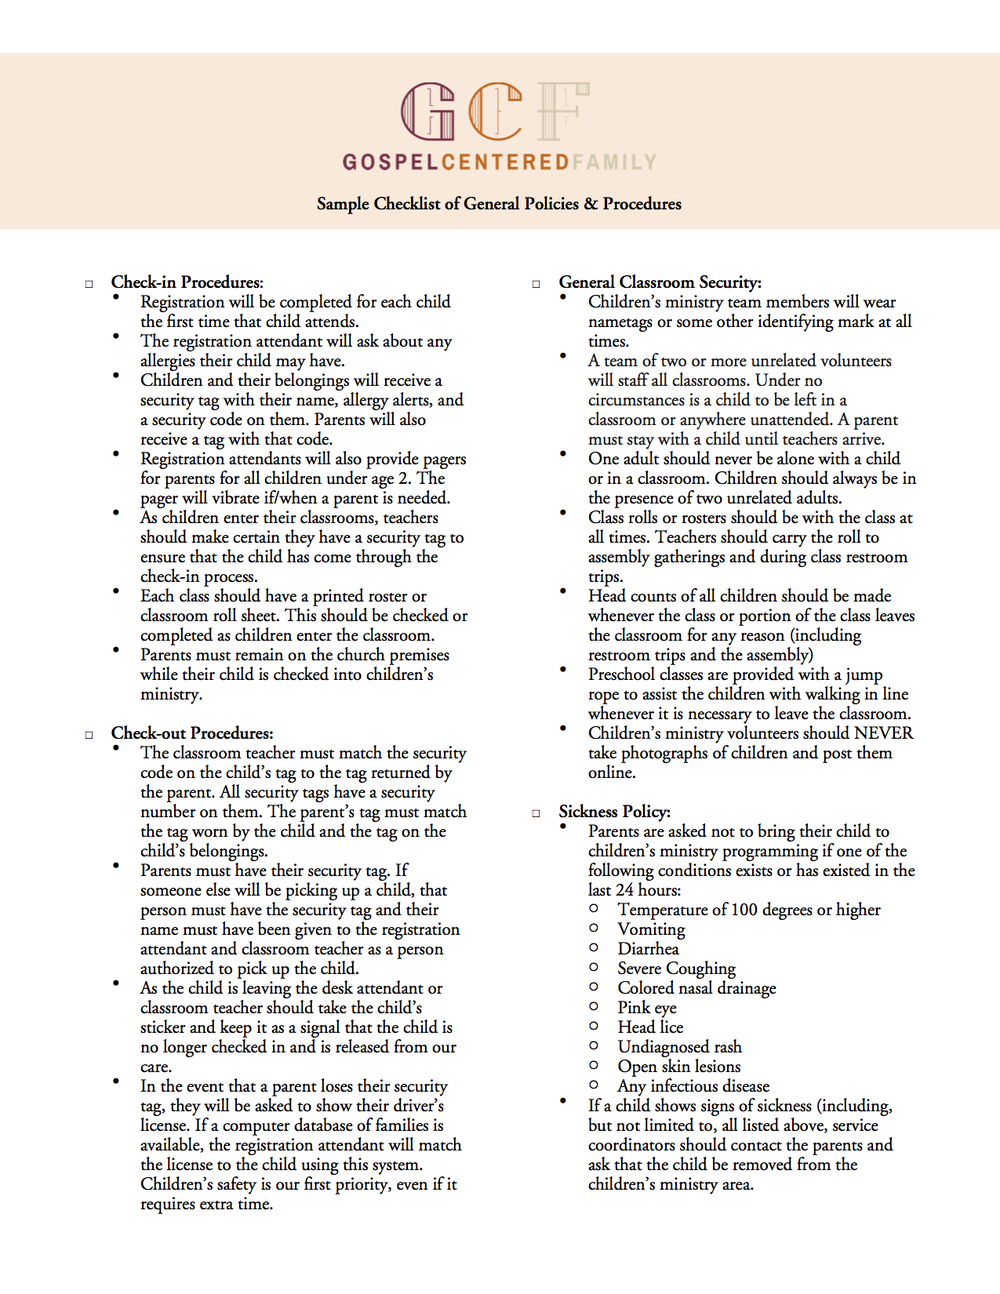 Kids Ministry Checklist of General Policies & Procedures By Jared Kennedy